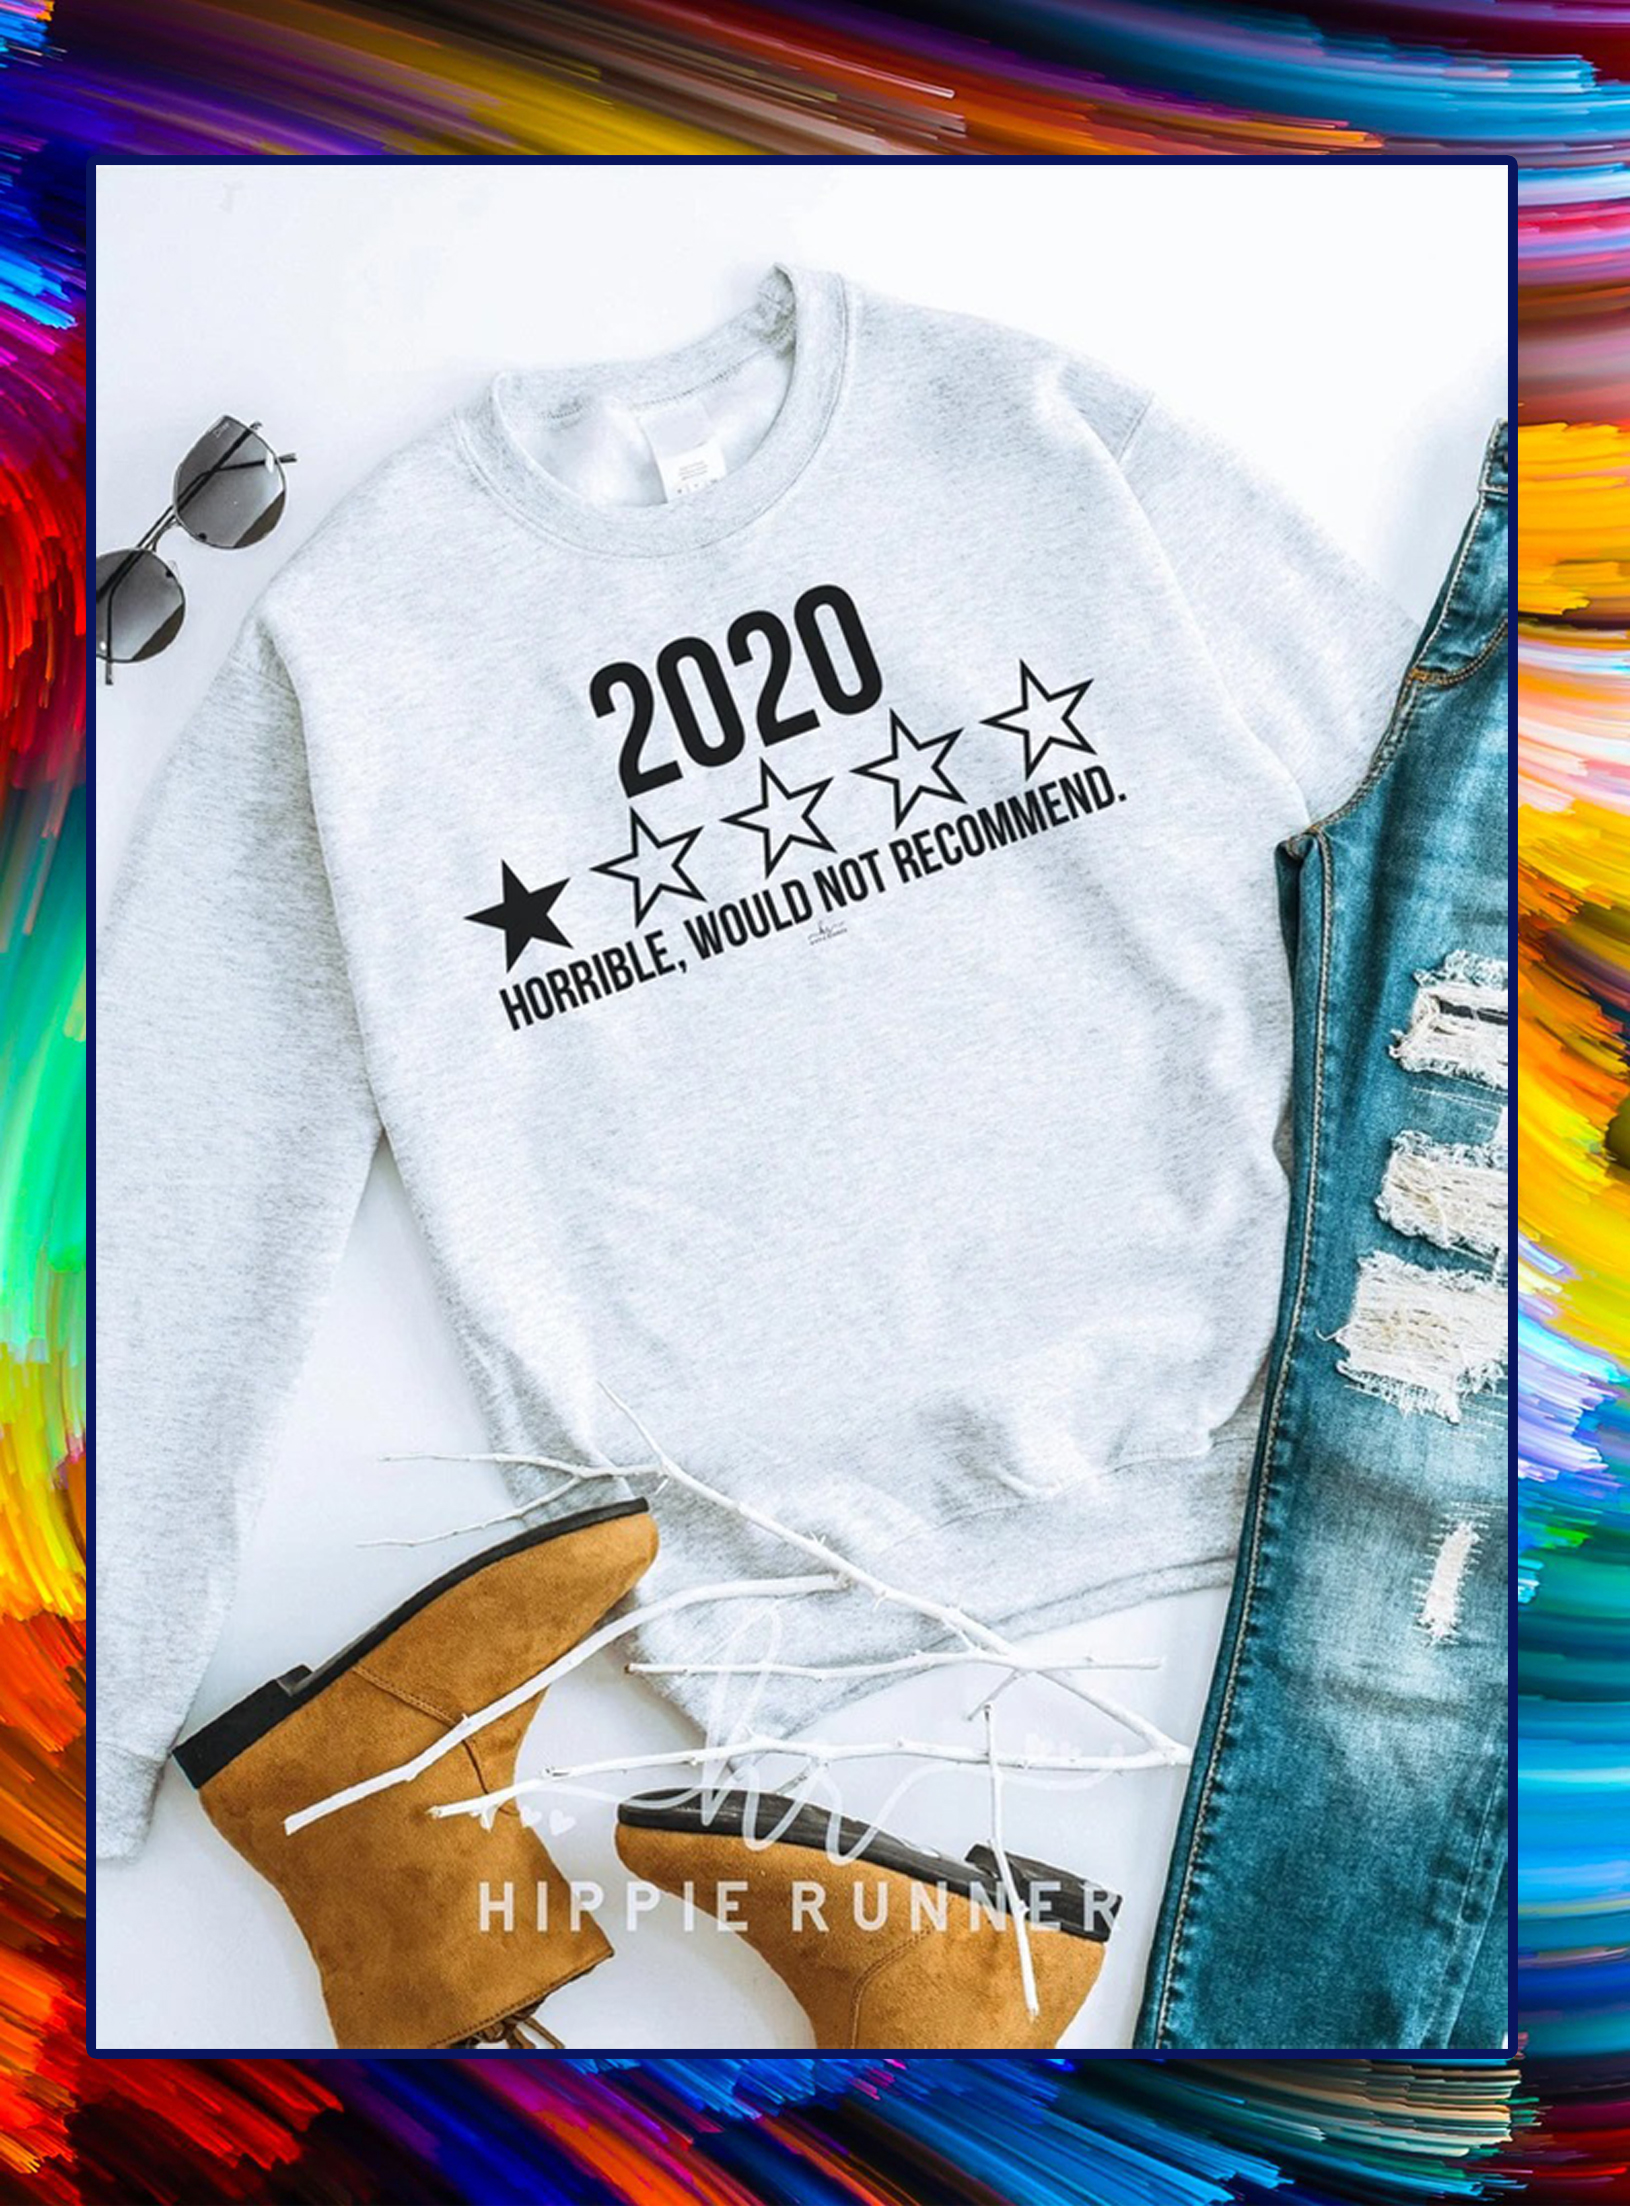 2020 horrible would not recommend sweatshirt